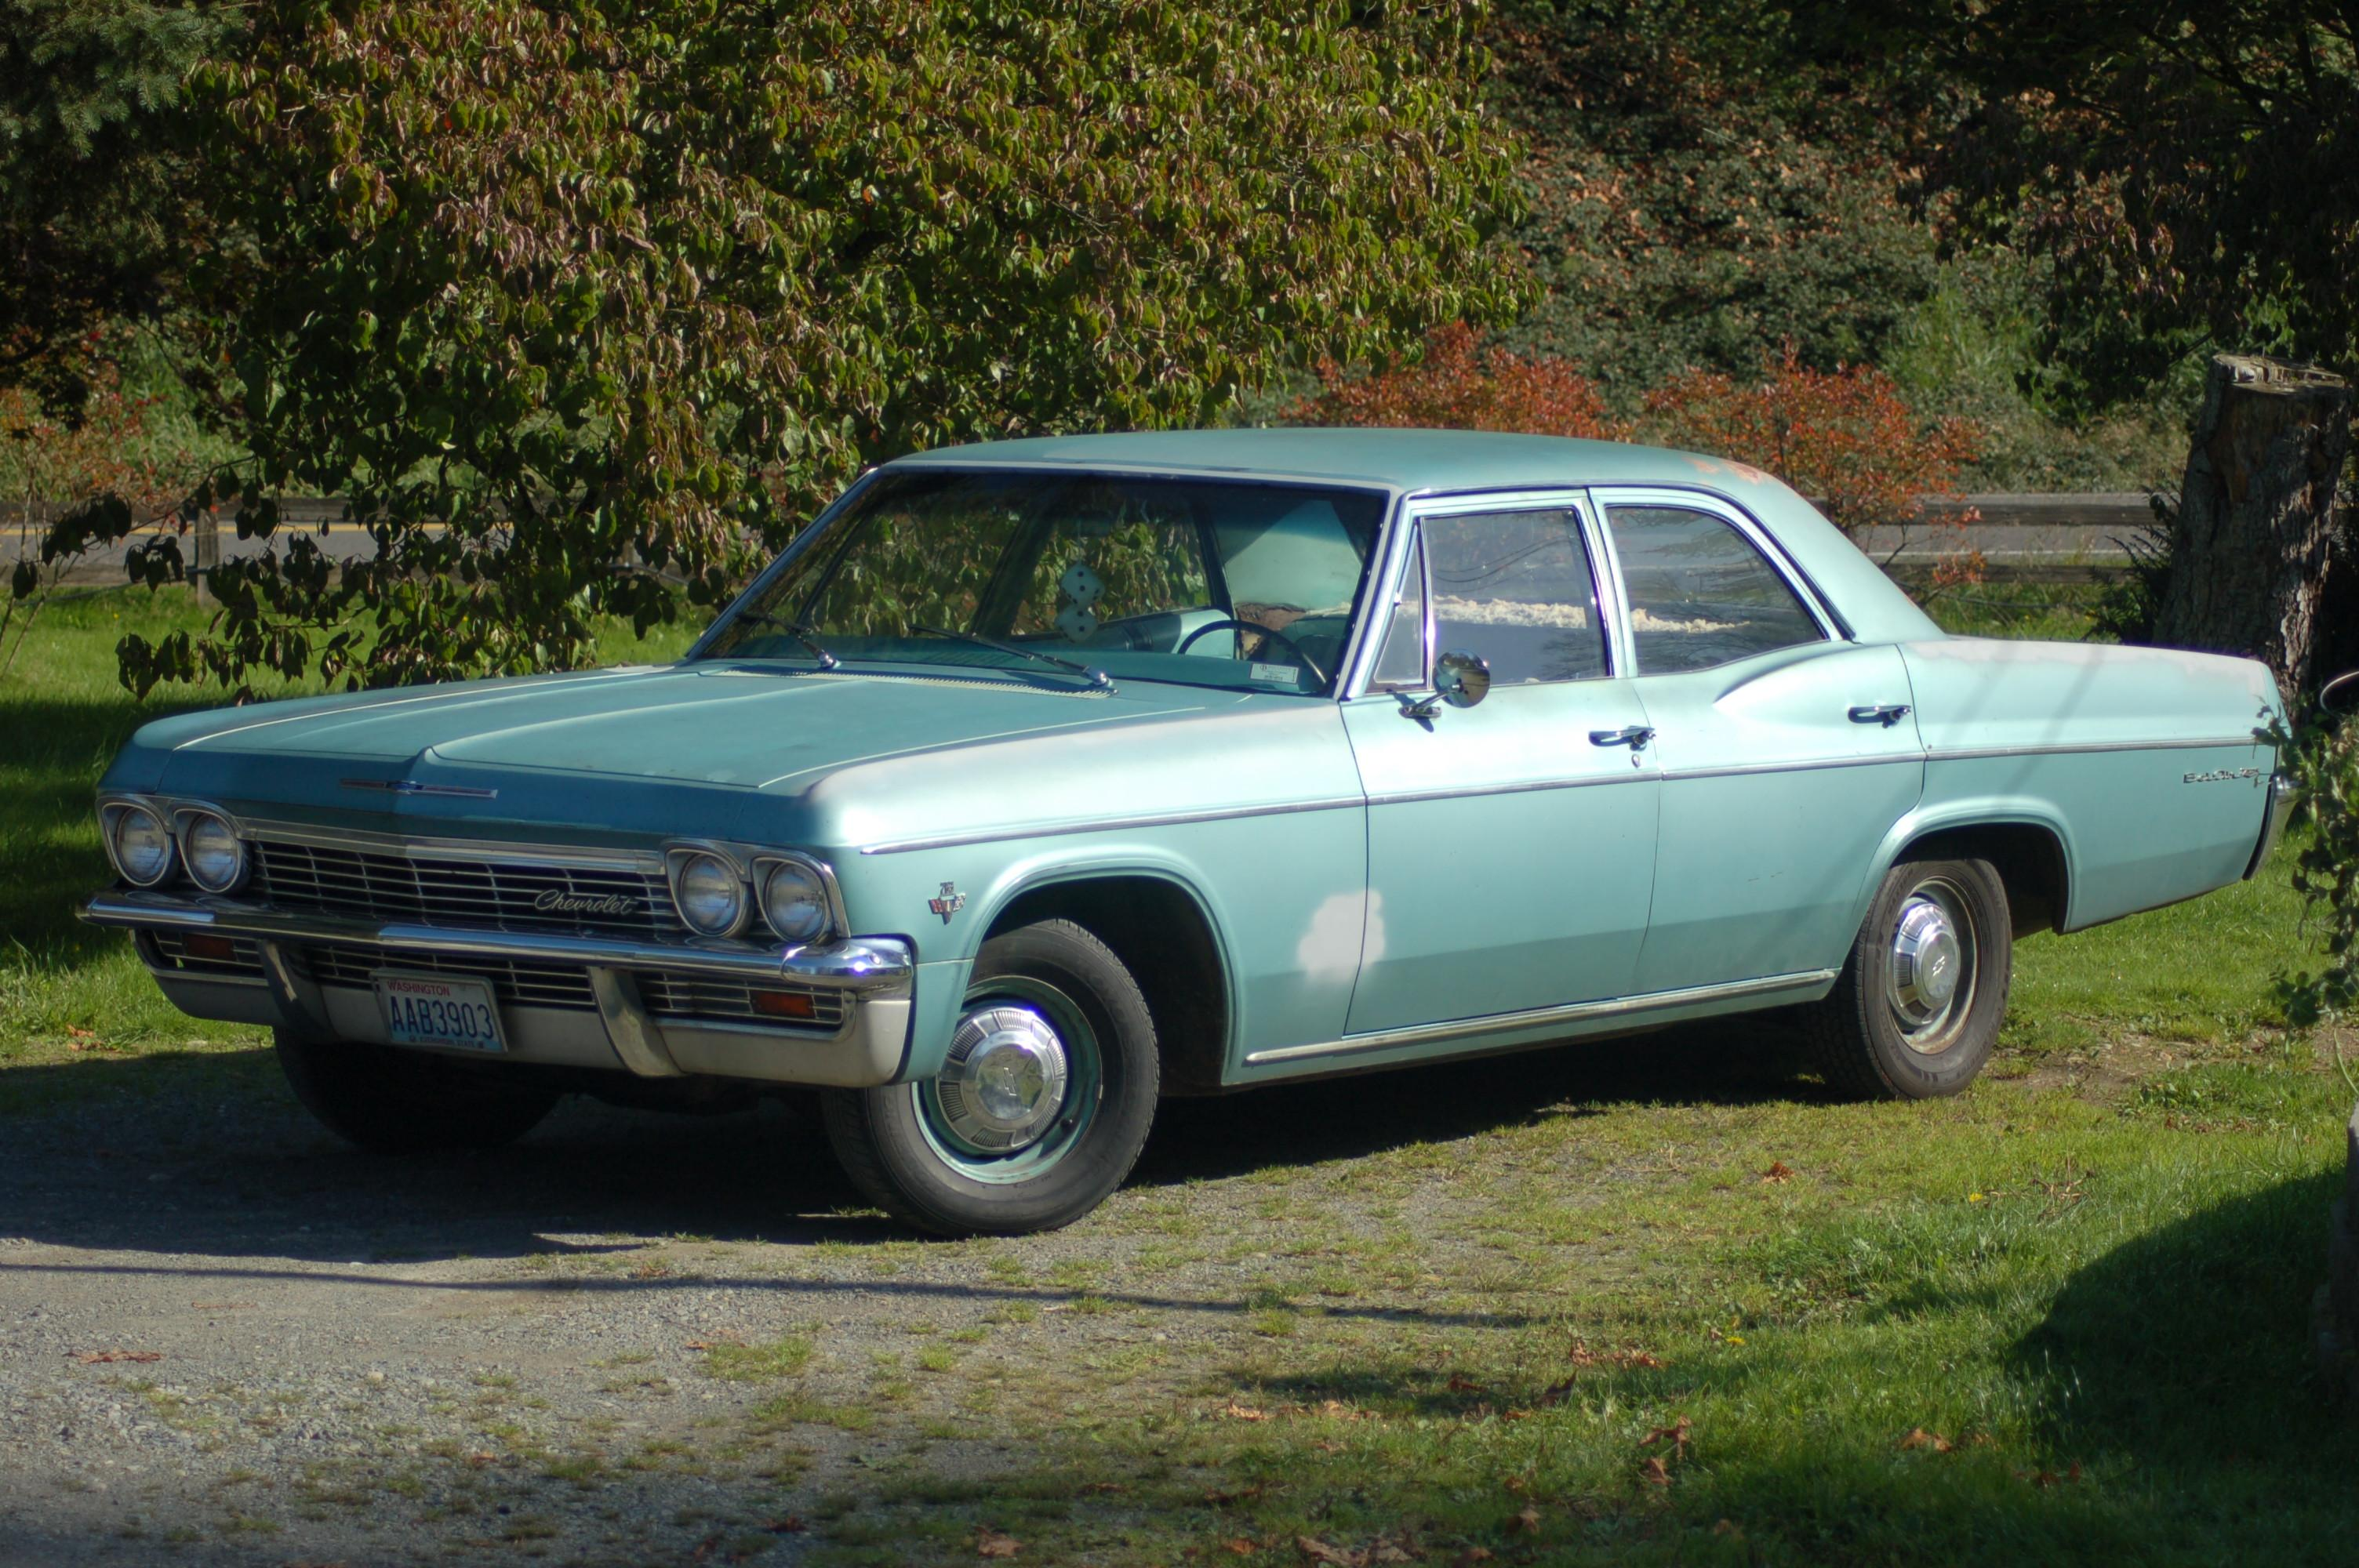 1978bluecamino 1965 Chevrolet Bel Air Specs, Photos ...